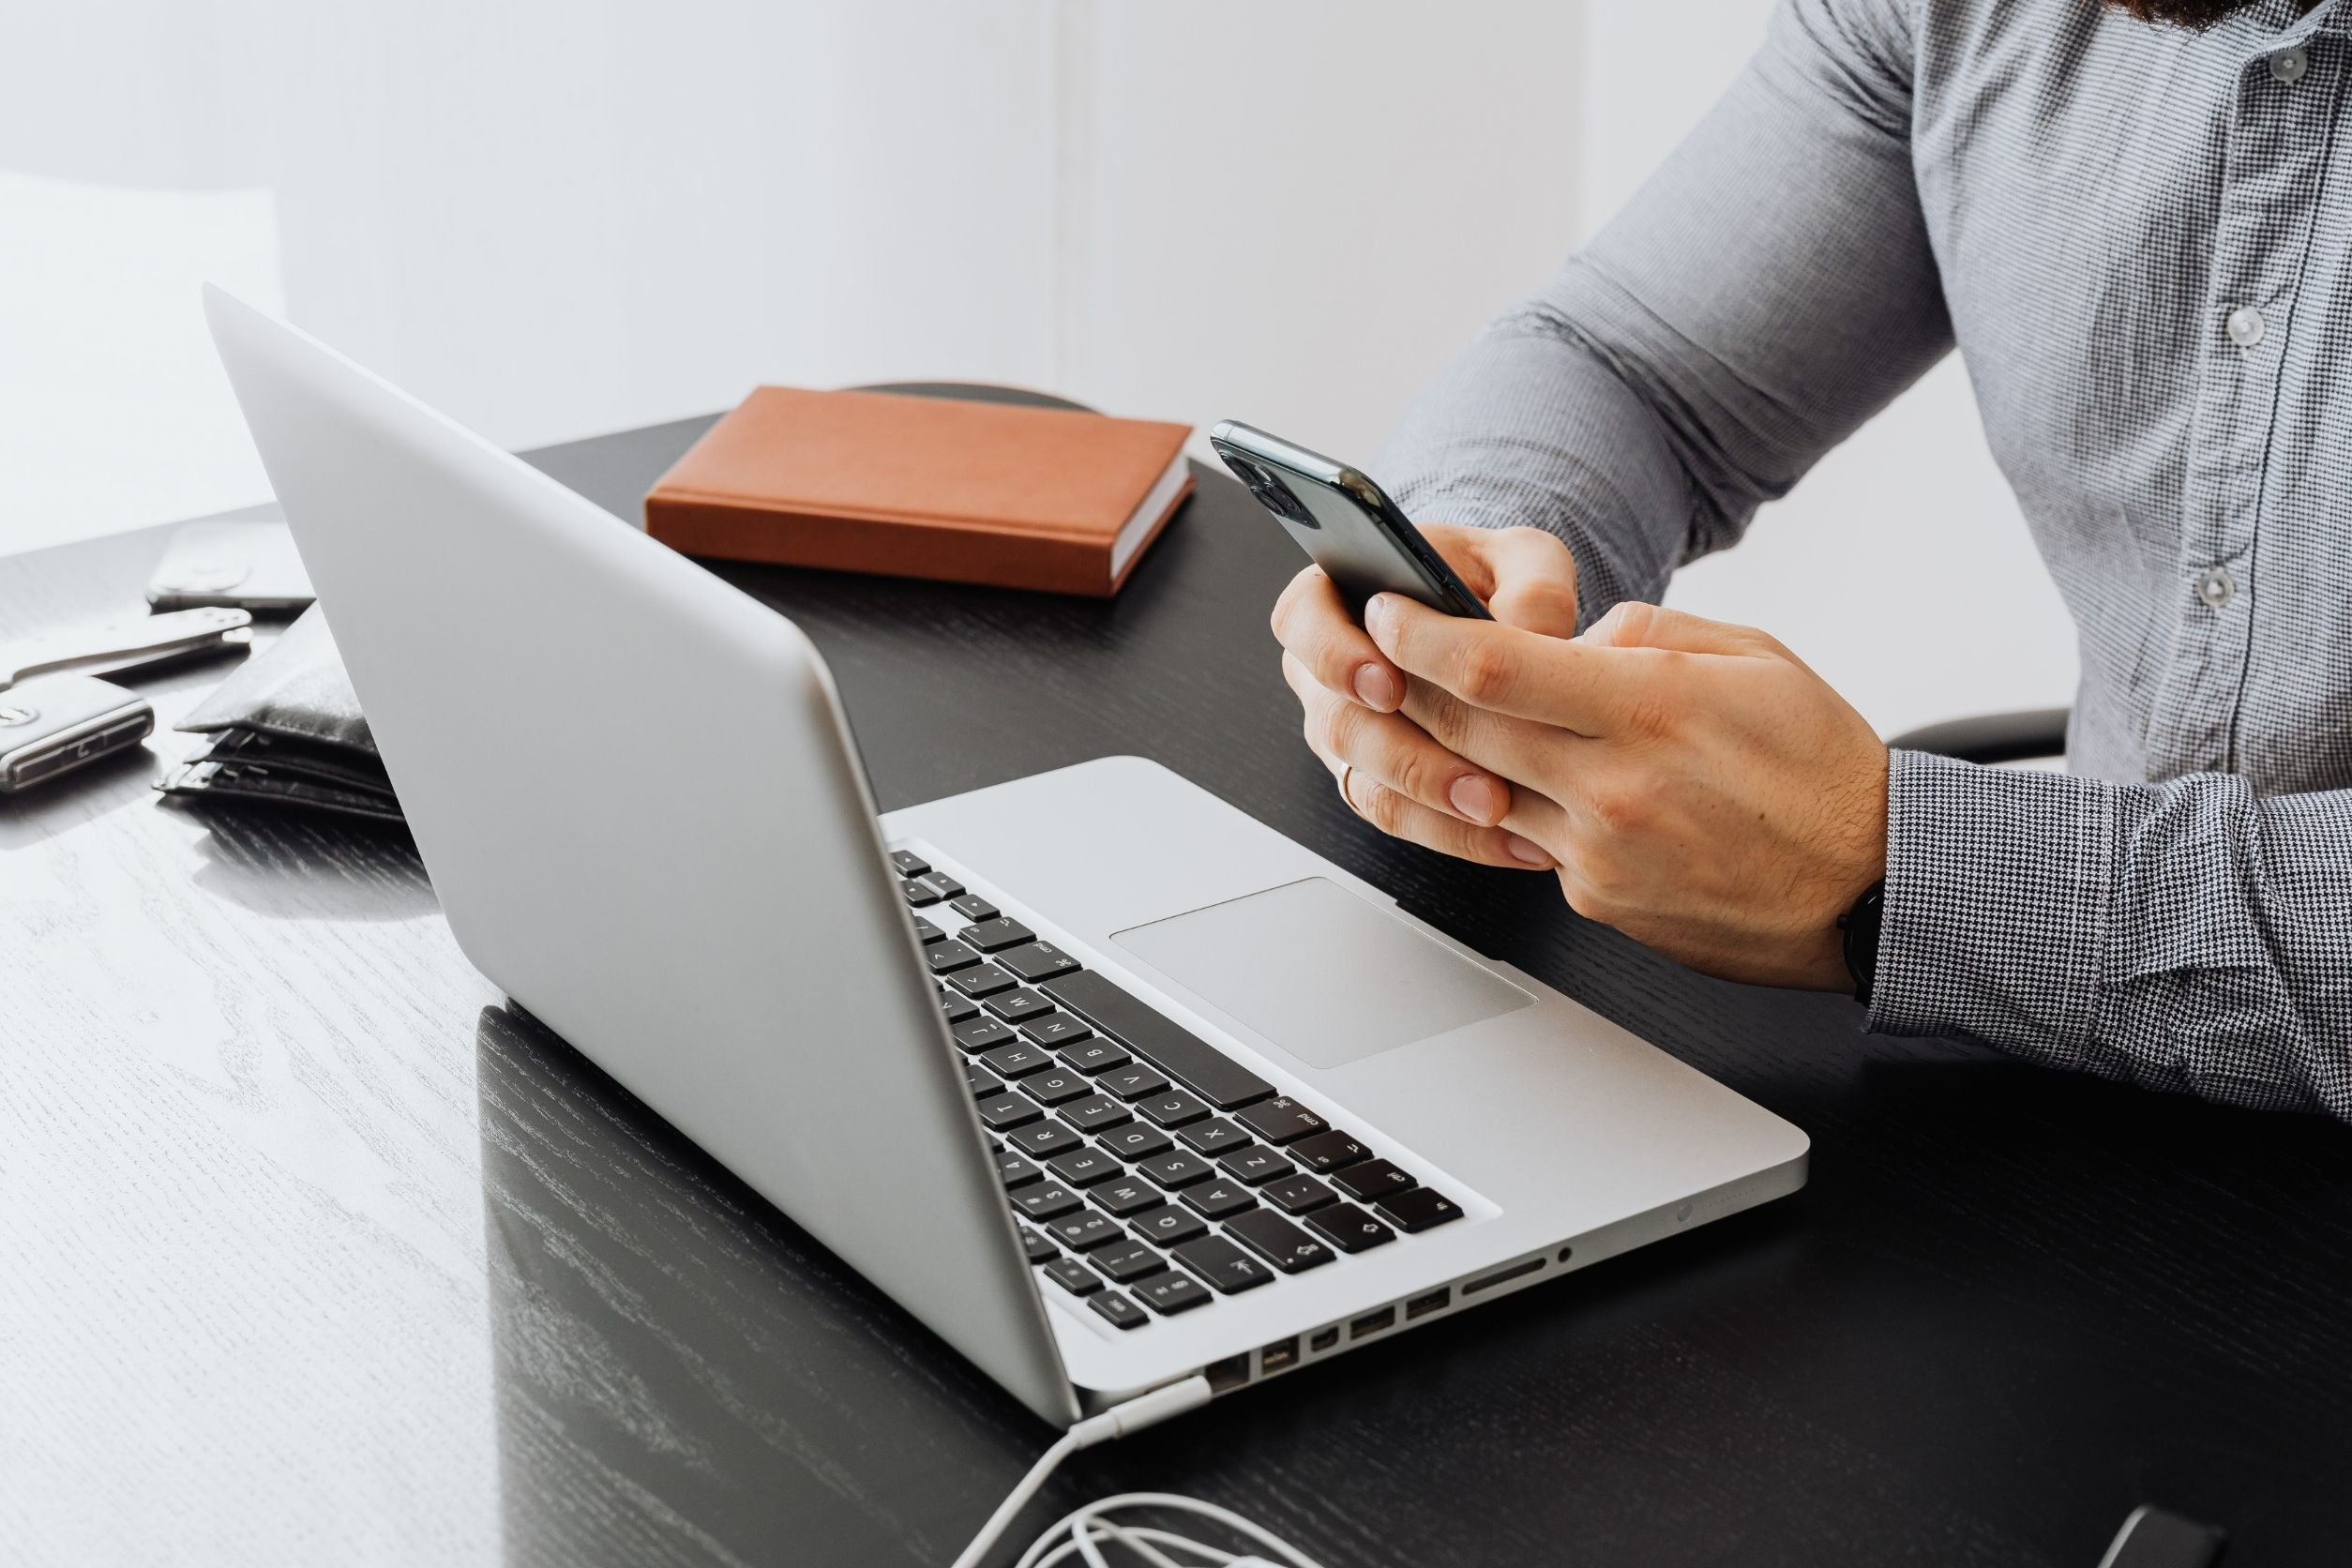 senior home care franchise owner wearing a gray shirt, using the phone and a laptop